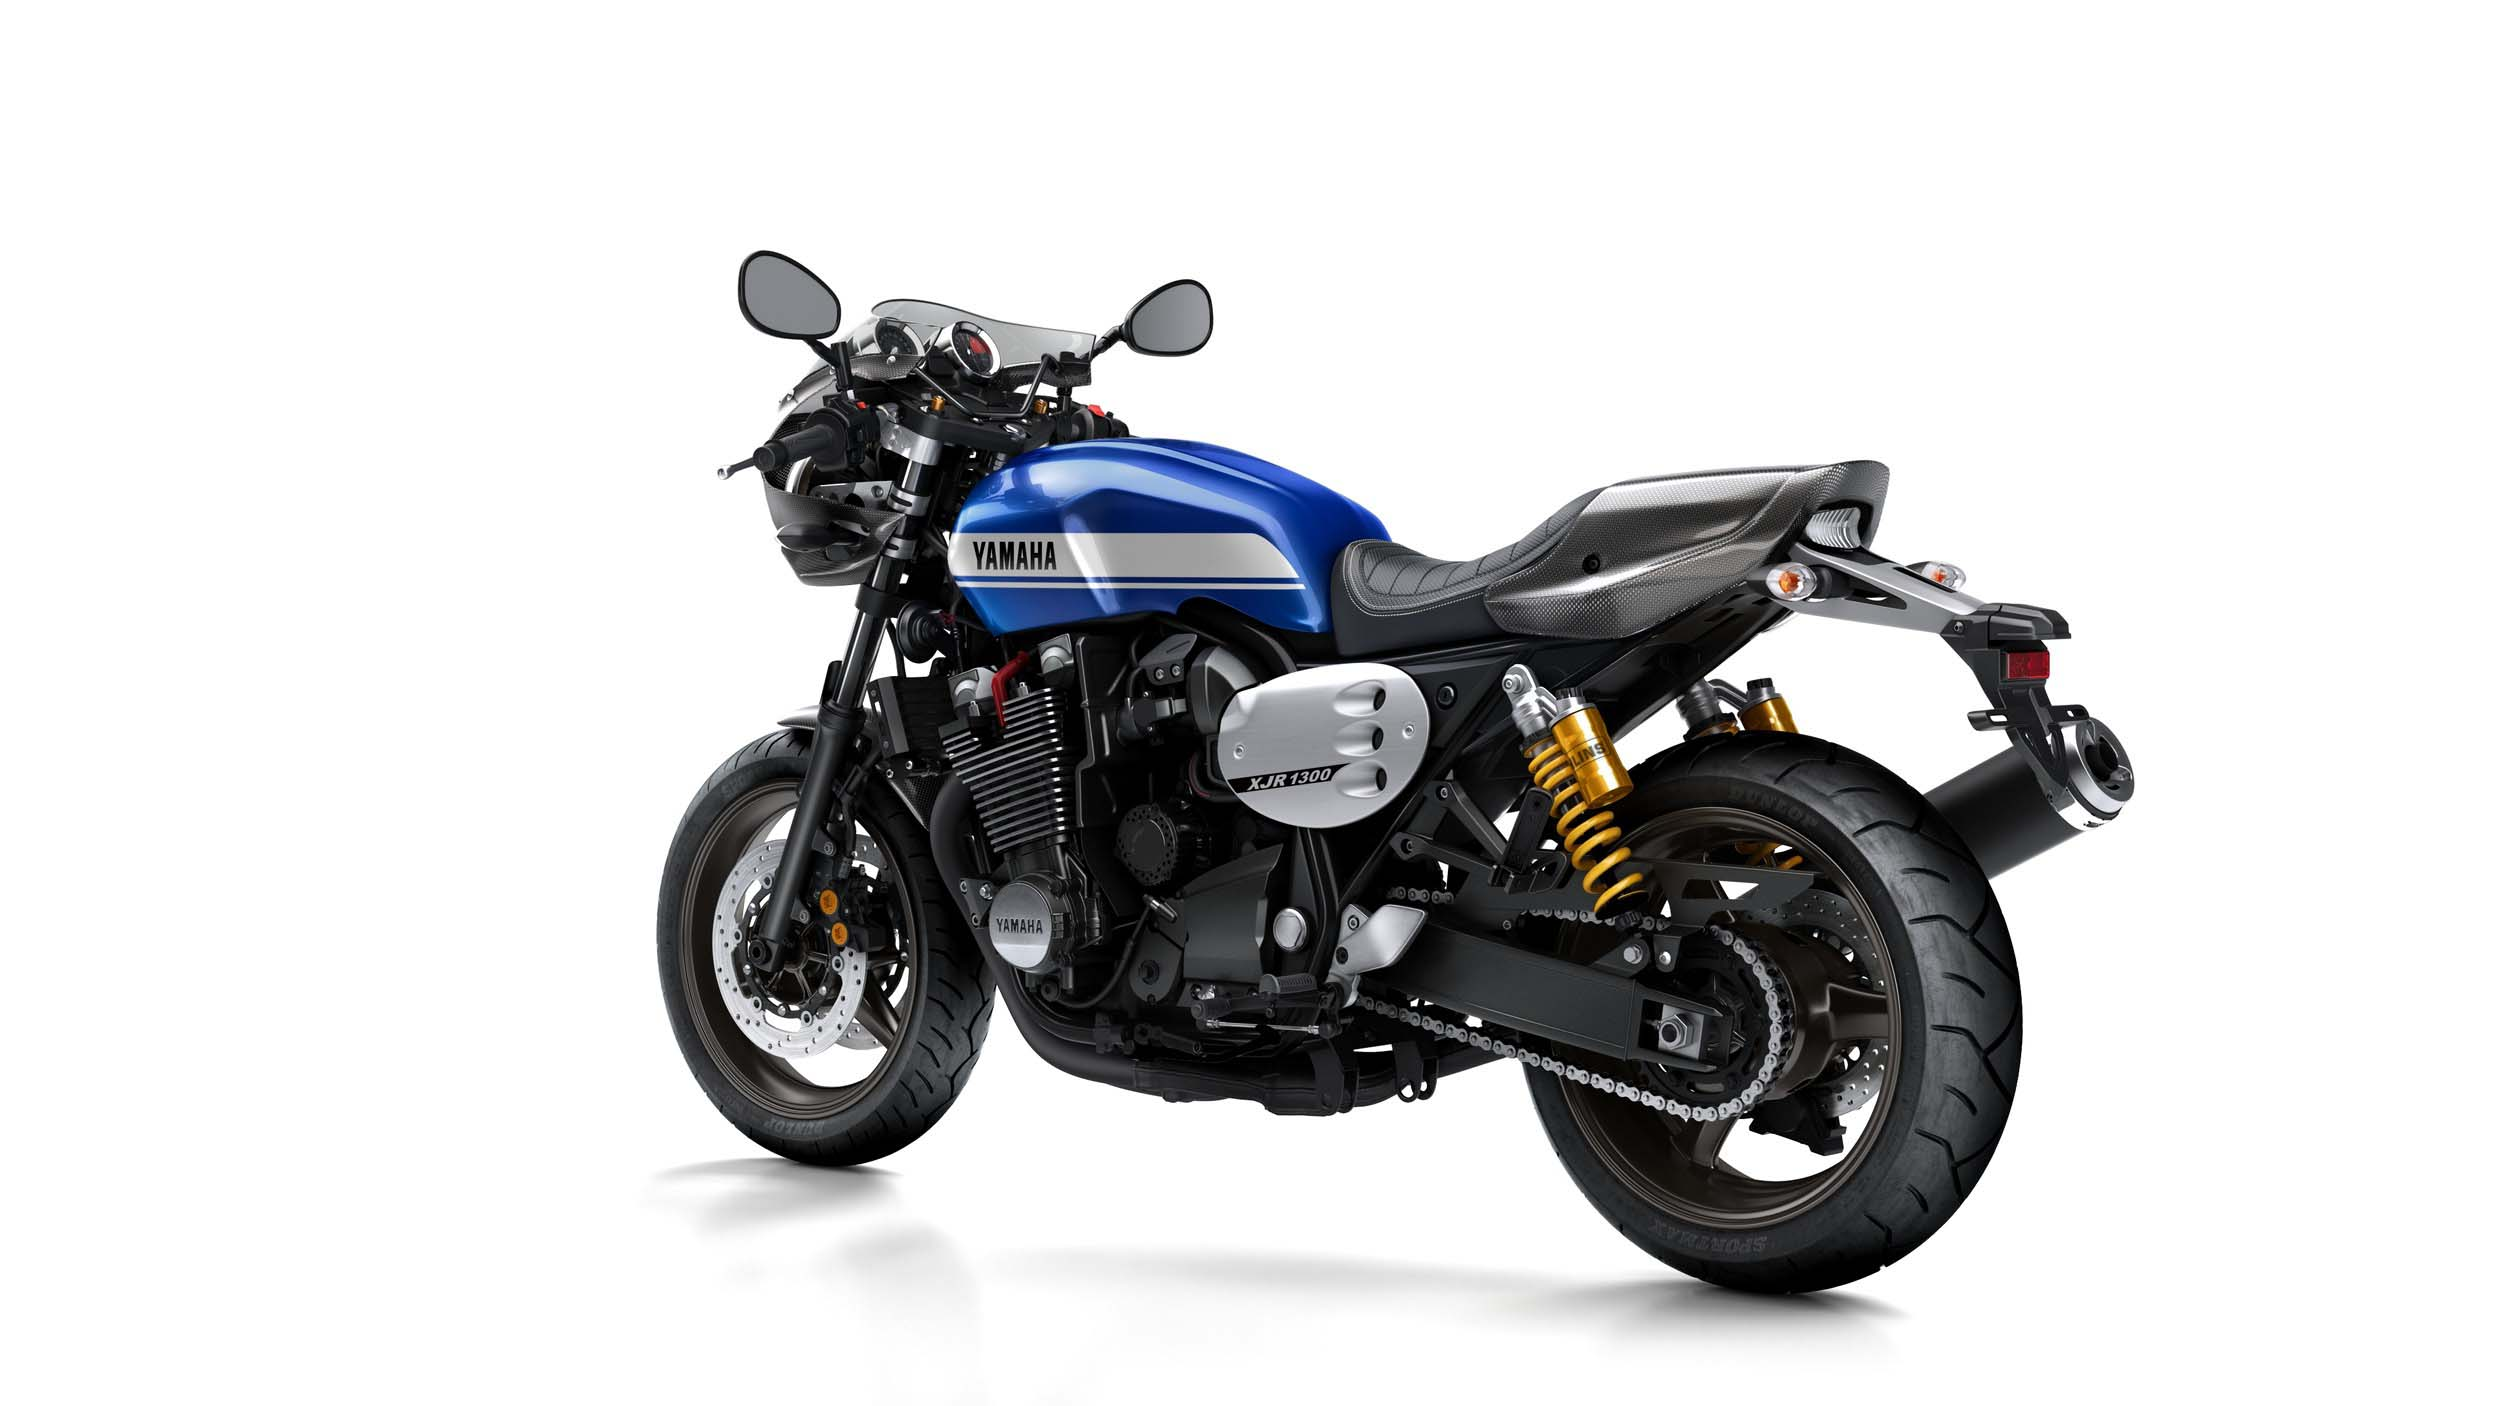 Yamaha xjr1300 photo - 6